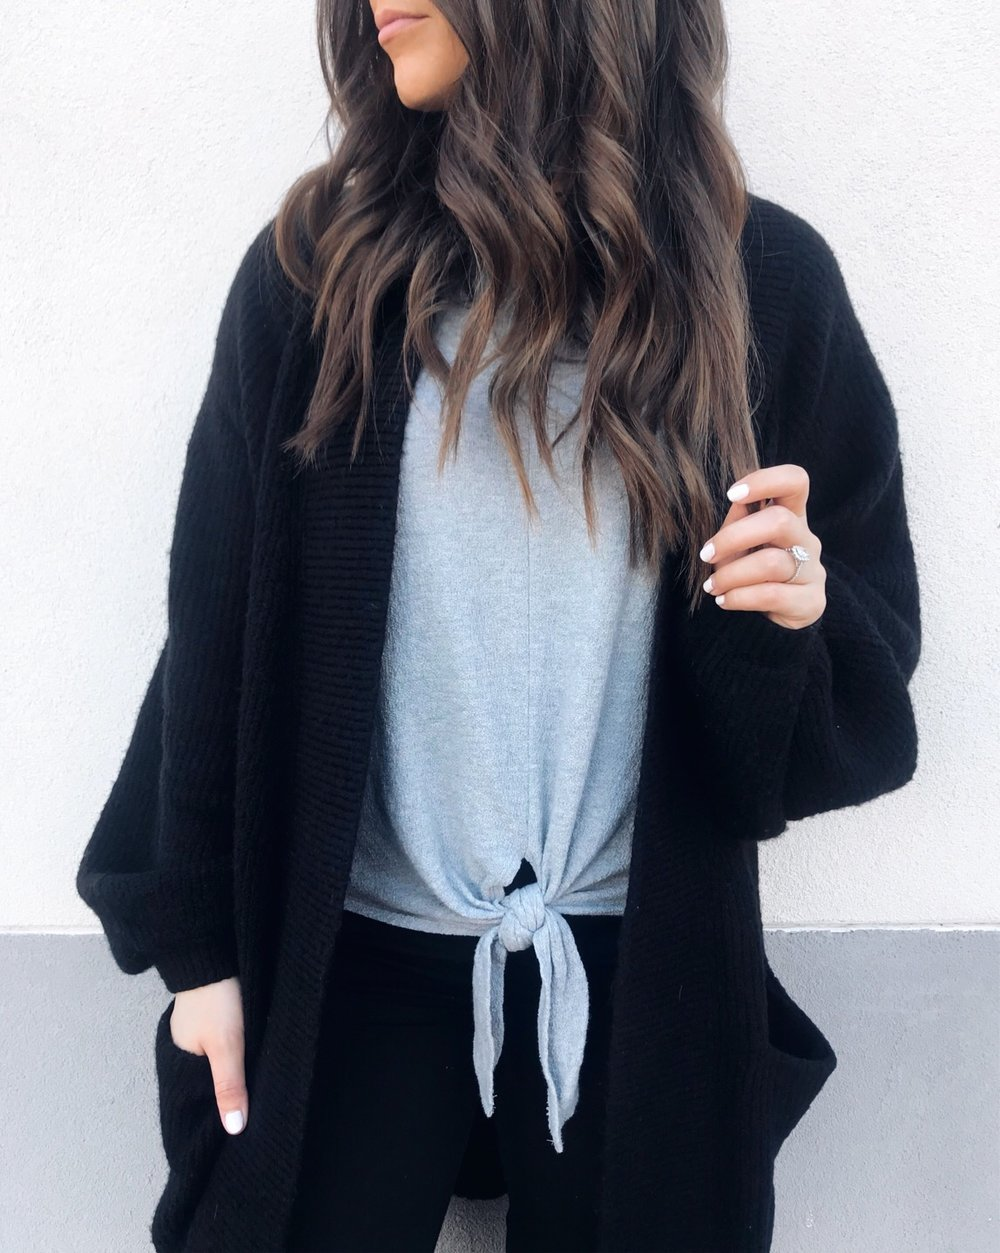 fall fashion / fall outfit idea / fall outfit inspiration / balloon sleeve cardigan / tie front tee / outfit of the day